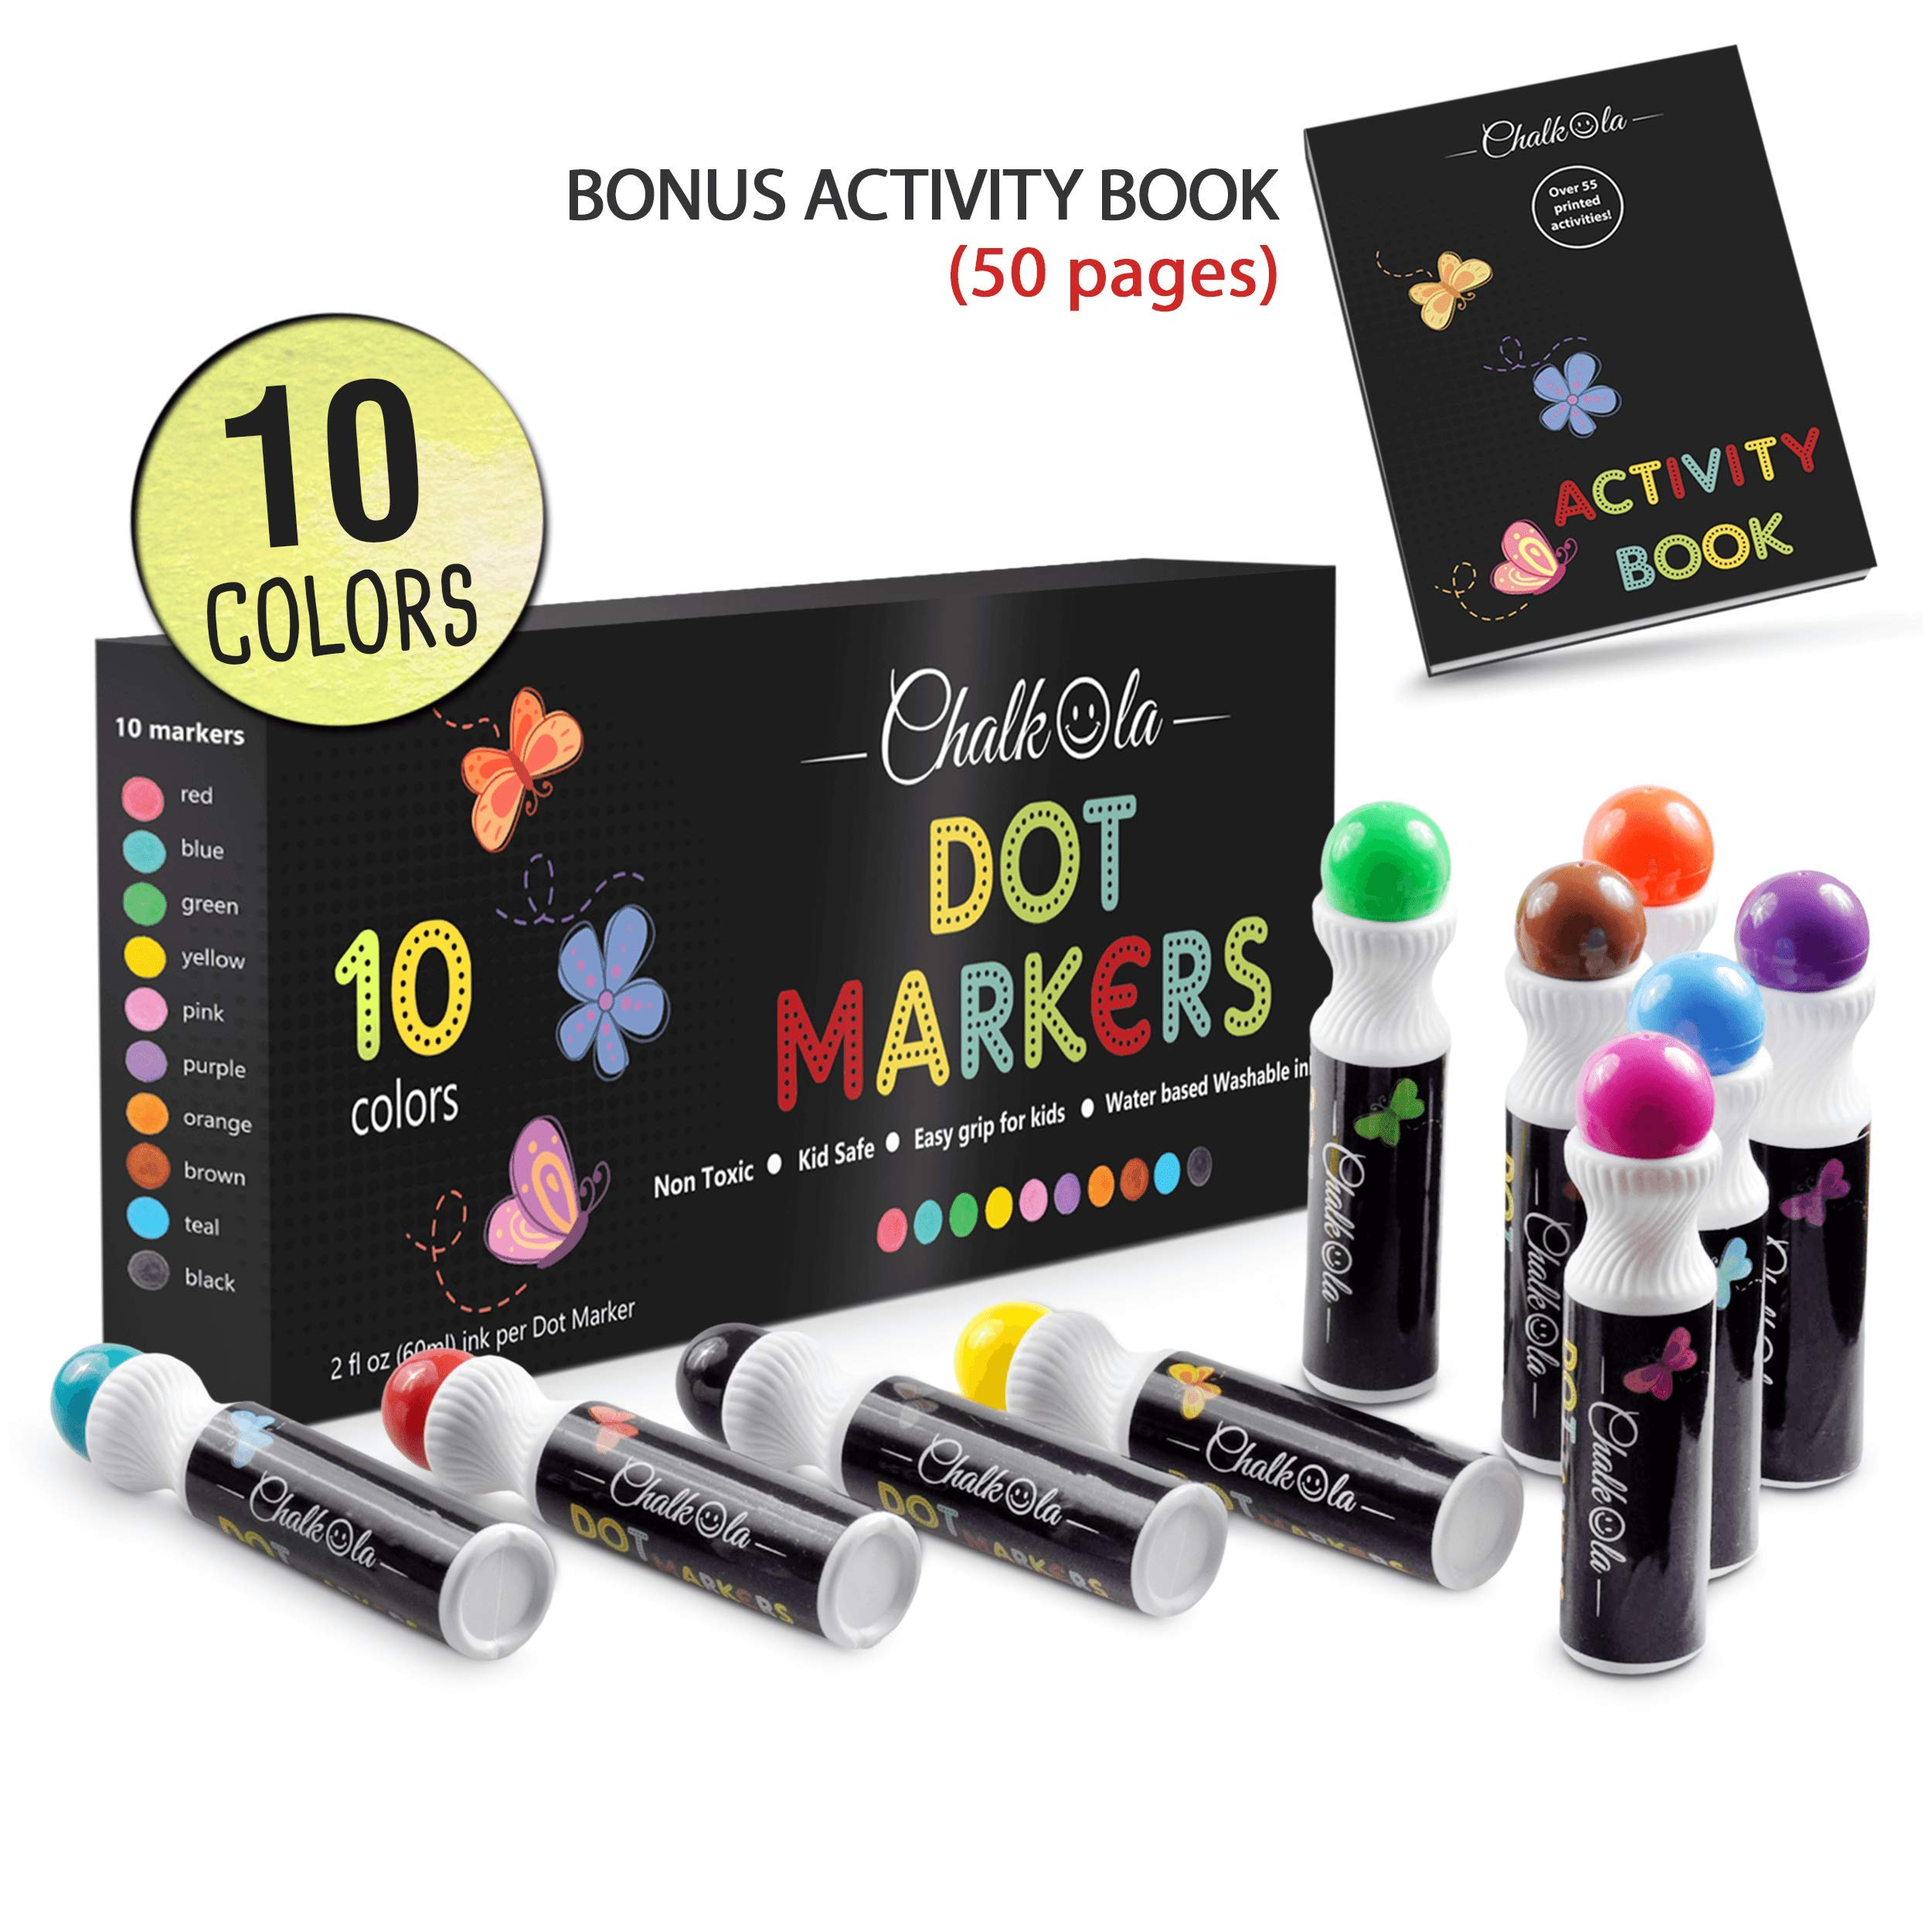 Washable Dot Markers for Kids with Free Activity Book | Large 10 Colors Set | Water-Based Non Toxic Paint Daubers | Dab Marker Kit for Toddlers & Preschoolers | Fun Art Supplies by Chalkola by Chalkola